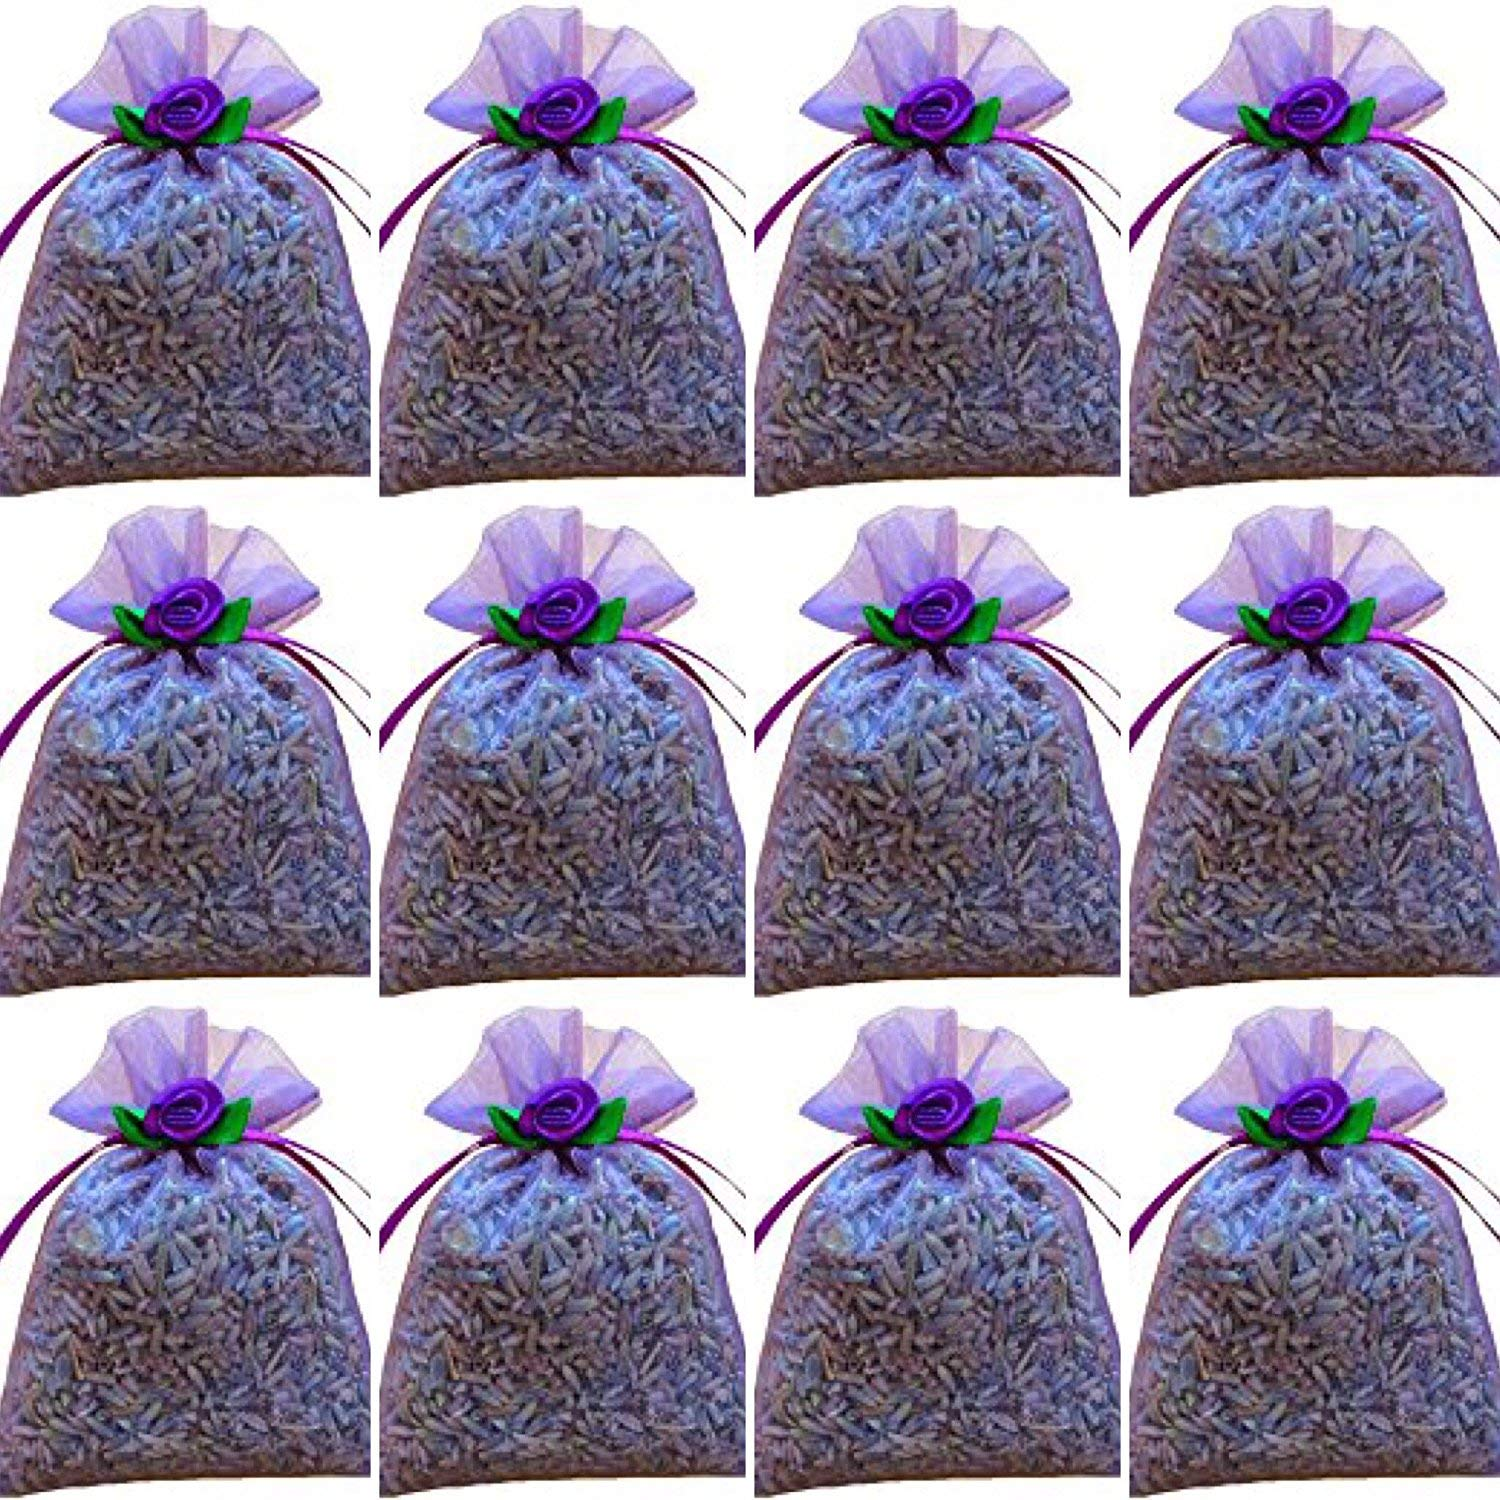 100 Lavender Filled Sachets - Perfect for Special Events - Handmade by Zziggysgal (Lavender with Satin Rosettes) by zziggysgal